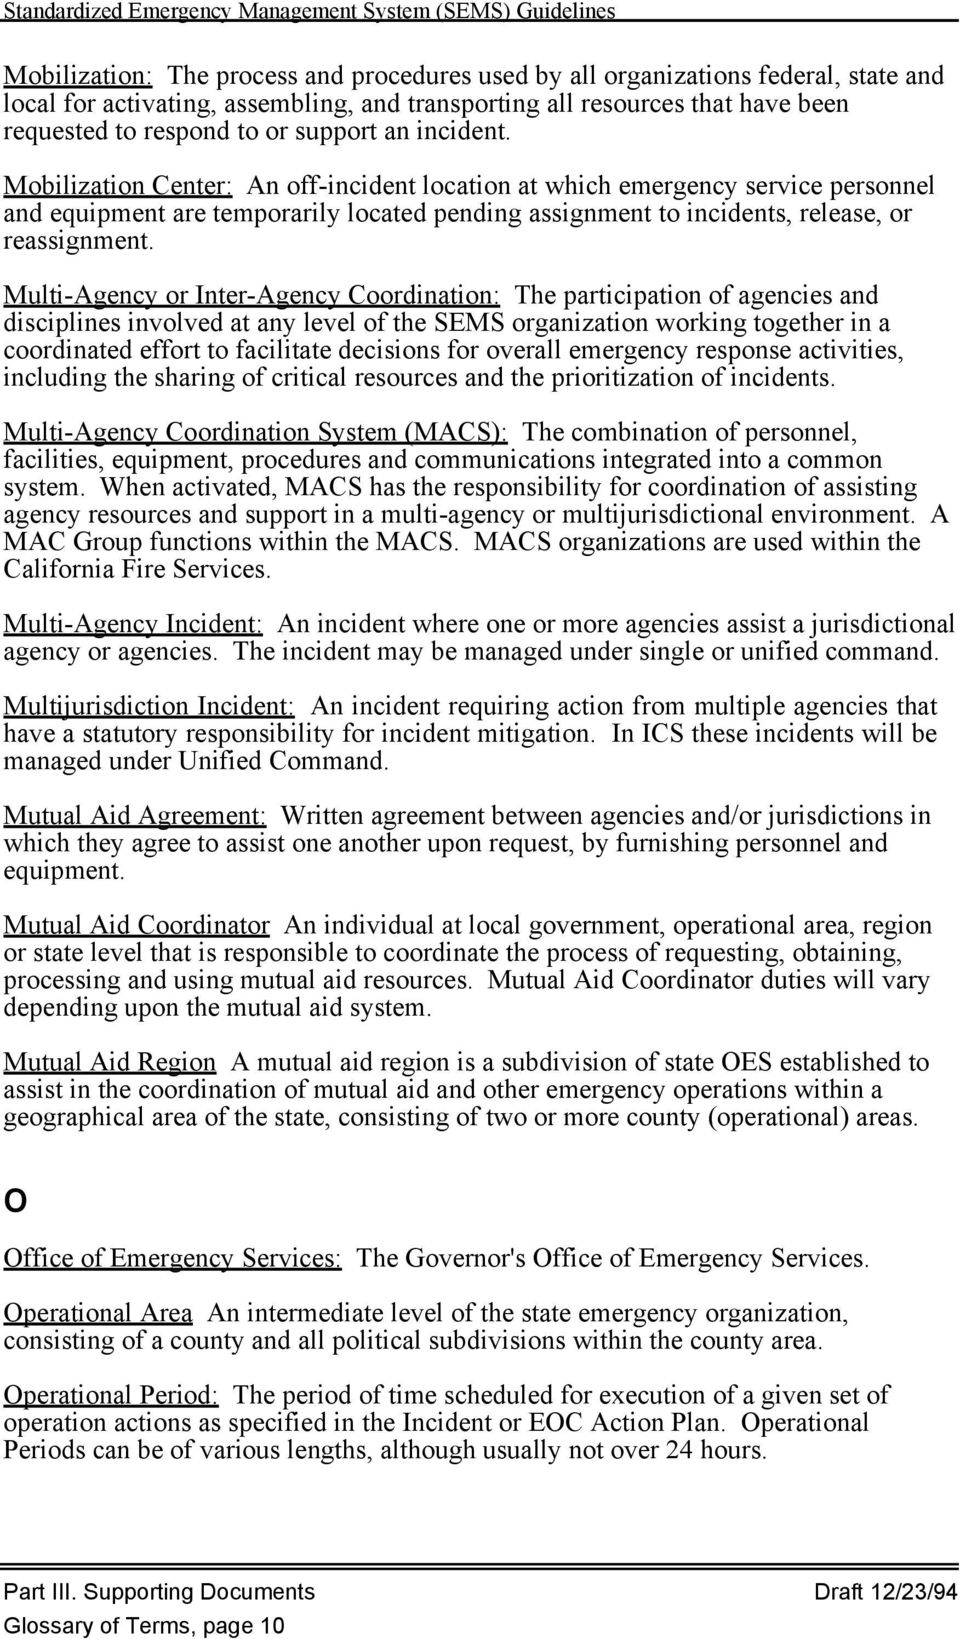 Multi-Agency or Inter-Agency Coordination: The participation of agencies and disciplines involved at any level of the SEMS organization working together in a coordinated effort to facilitate